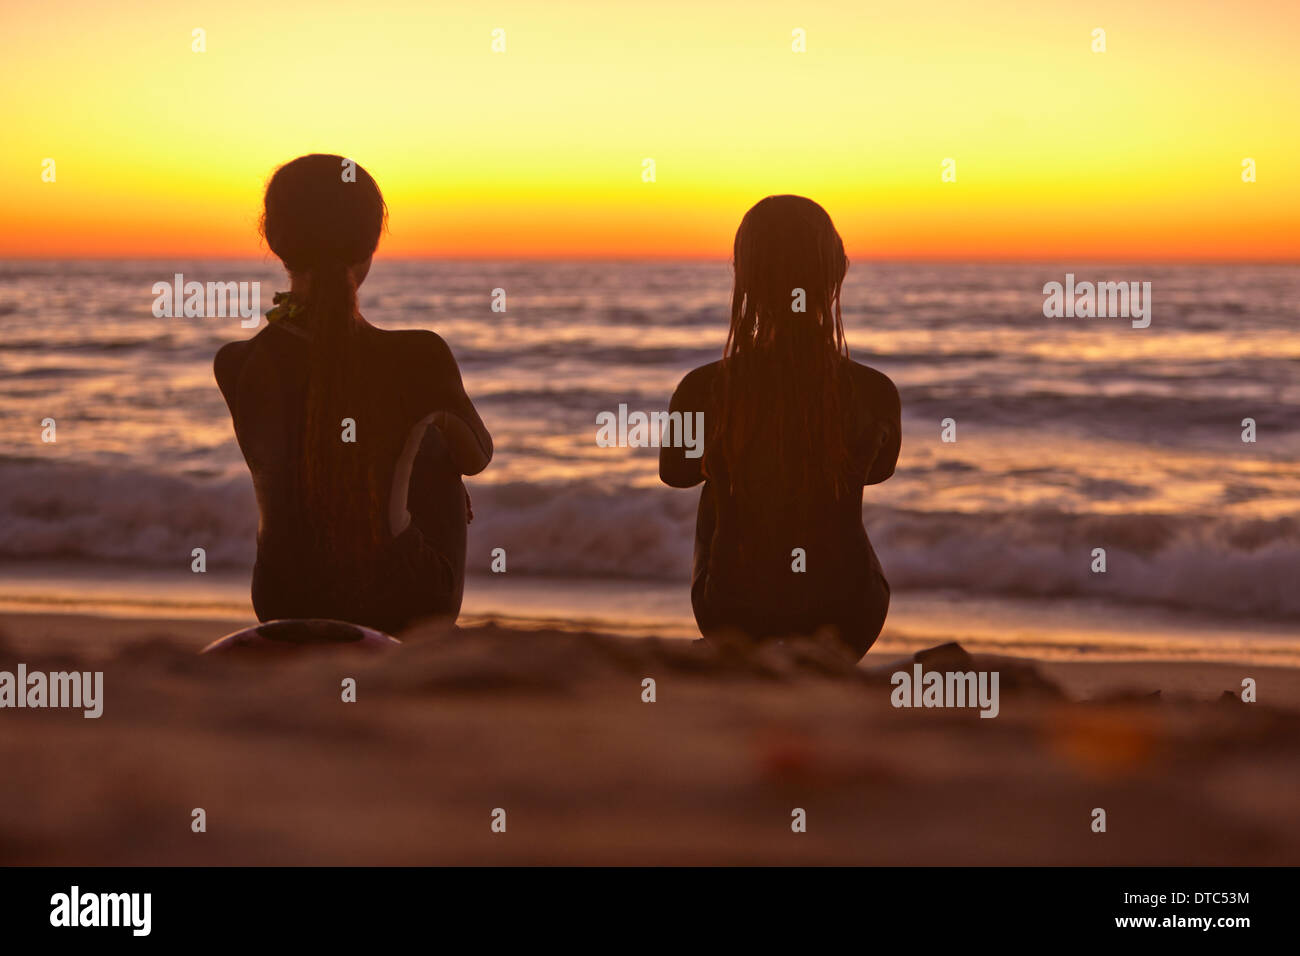 Two girls sitting on beach at sunset looking out to sea - Stock Image